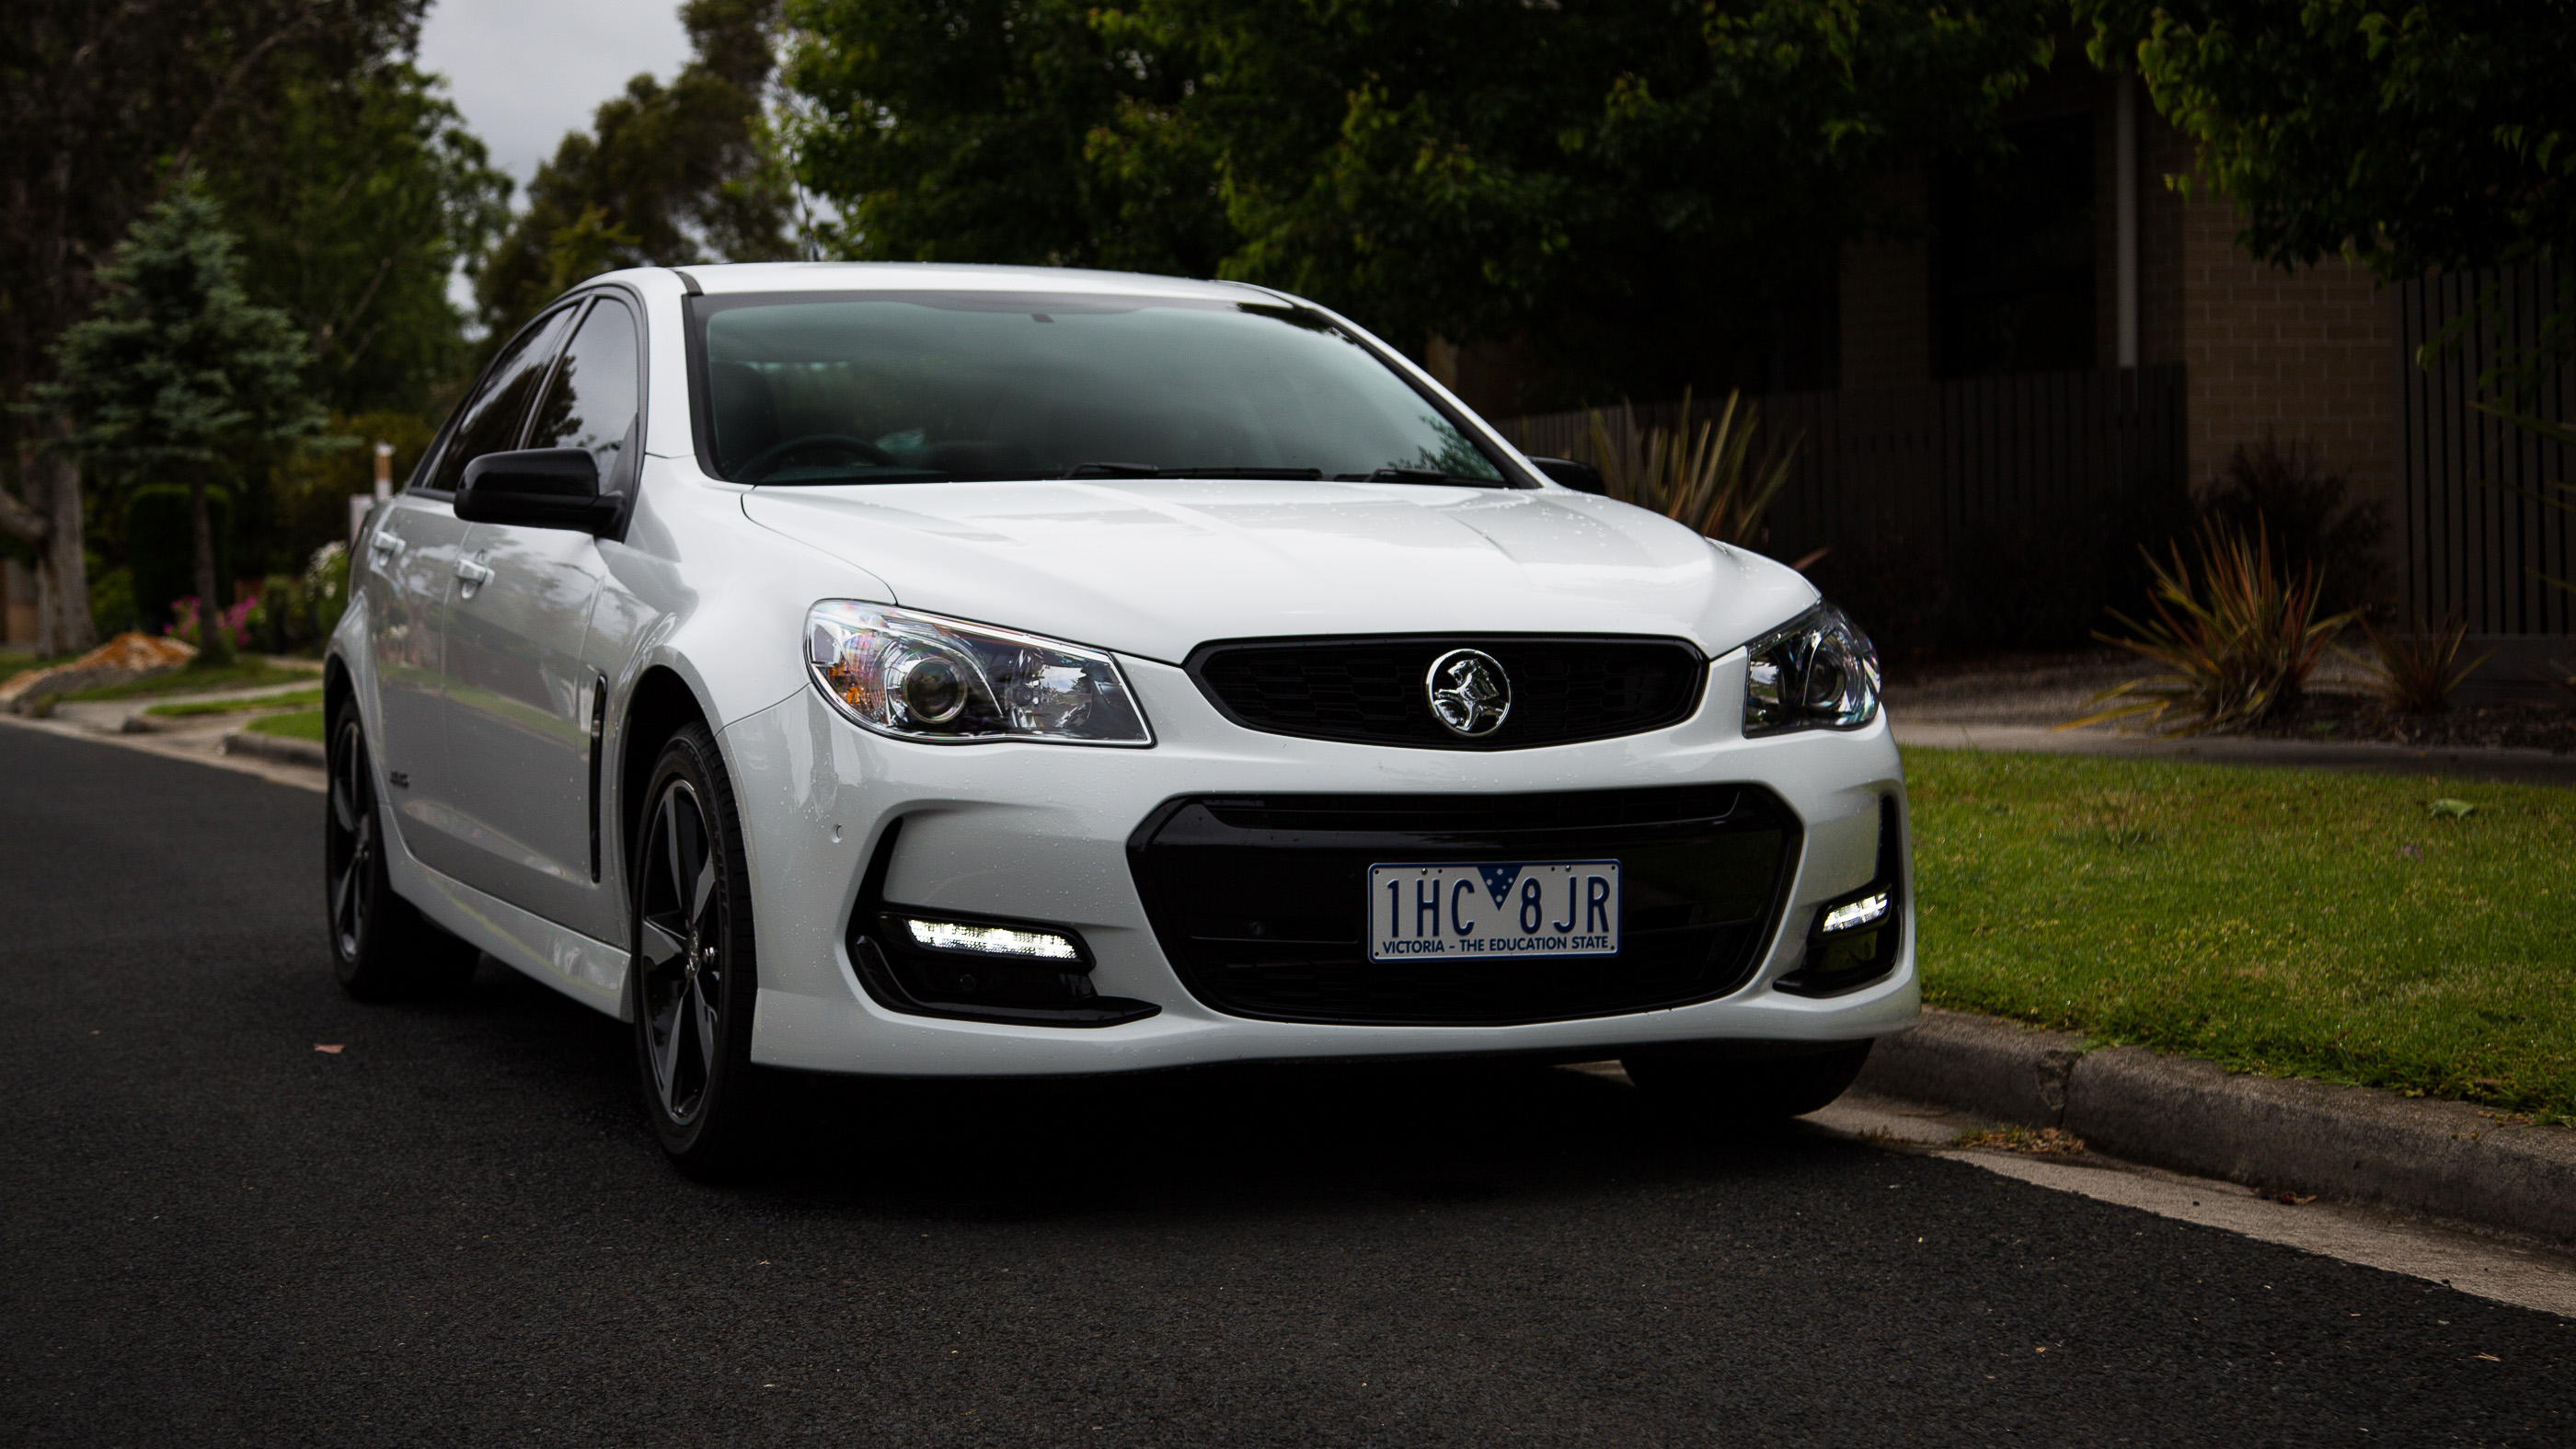 Lastest 2016 Holden Commodore SV6 Black Edition Review  CarAdvice